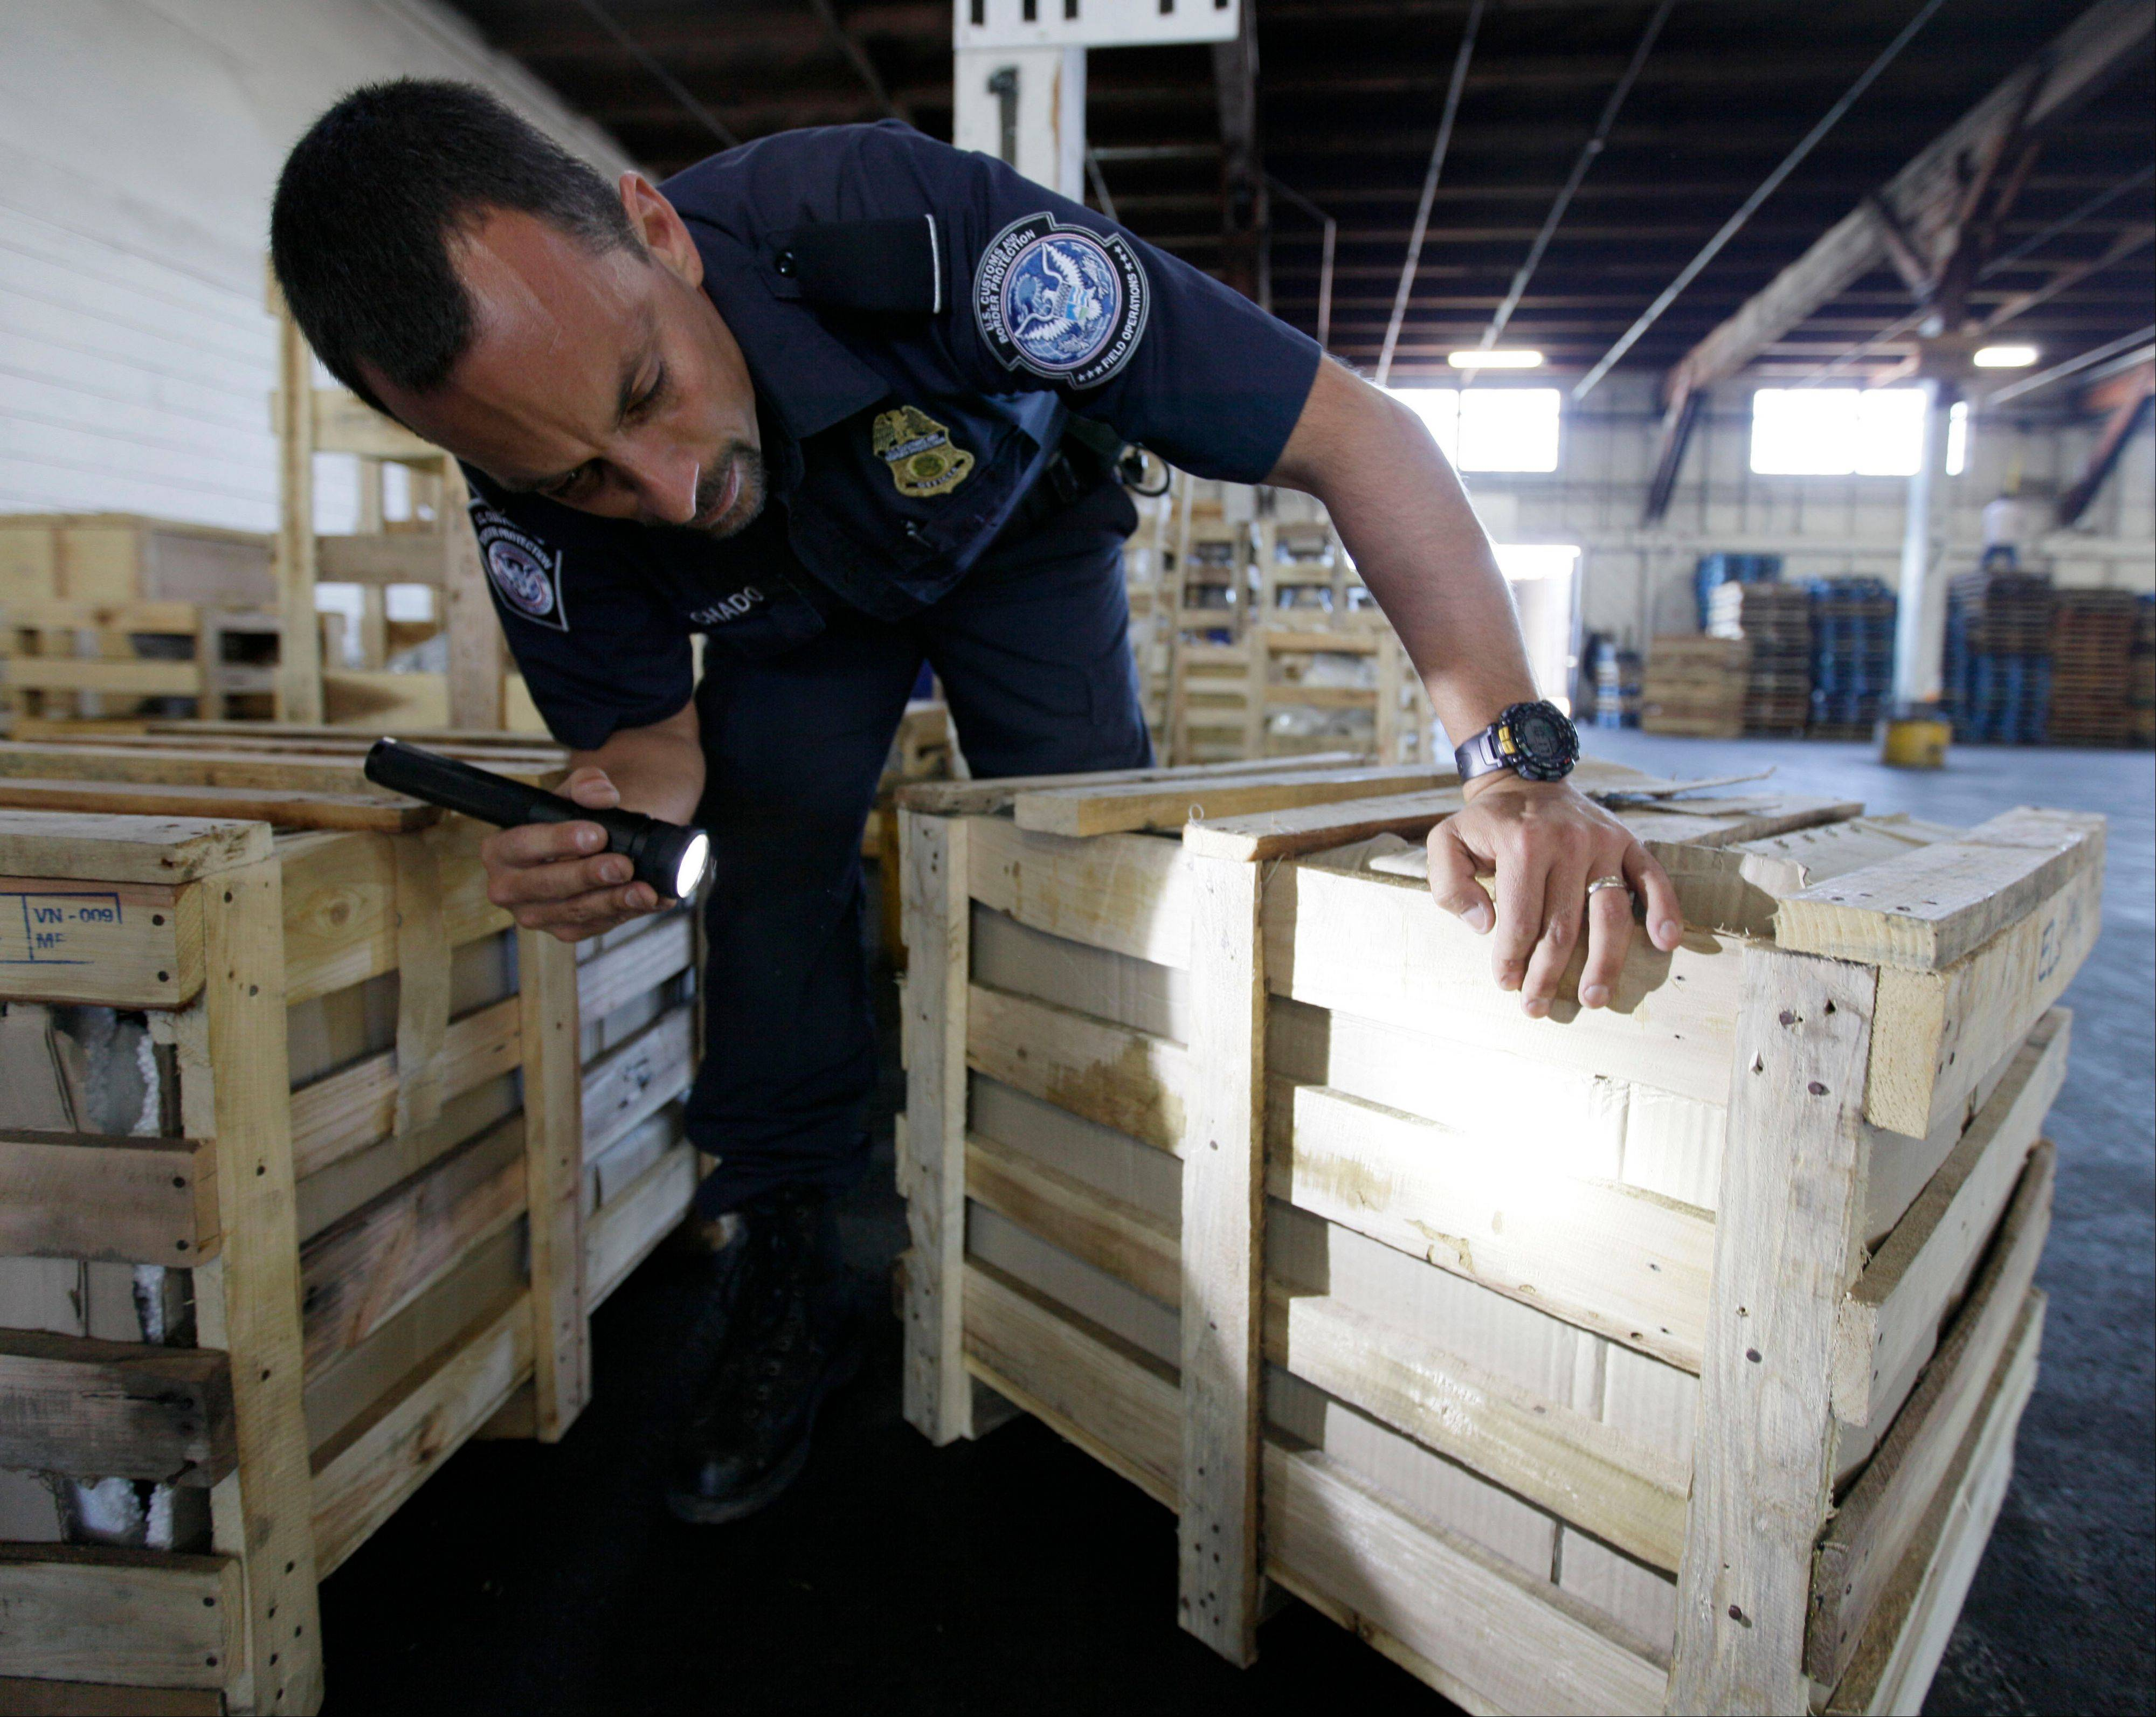 Agriculture specialist John Machado, with U.S. Customs and Border Protection, spots a wooden crate that a pest had bore into at bottom right, during an inspection in Oakland, Calif., Tuesday Aug. 23, 2011. Dozens of foreign insects and plant diseases slipped undetected into the United States in the years after 9/11, when authorities were so focused on preventing another attack that they overlooked a pest explosion that threatened the quality of the nation�s food supply.